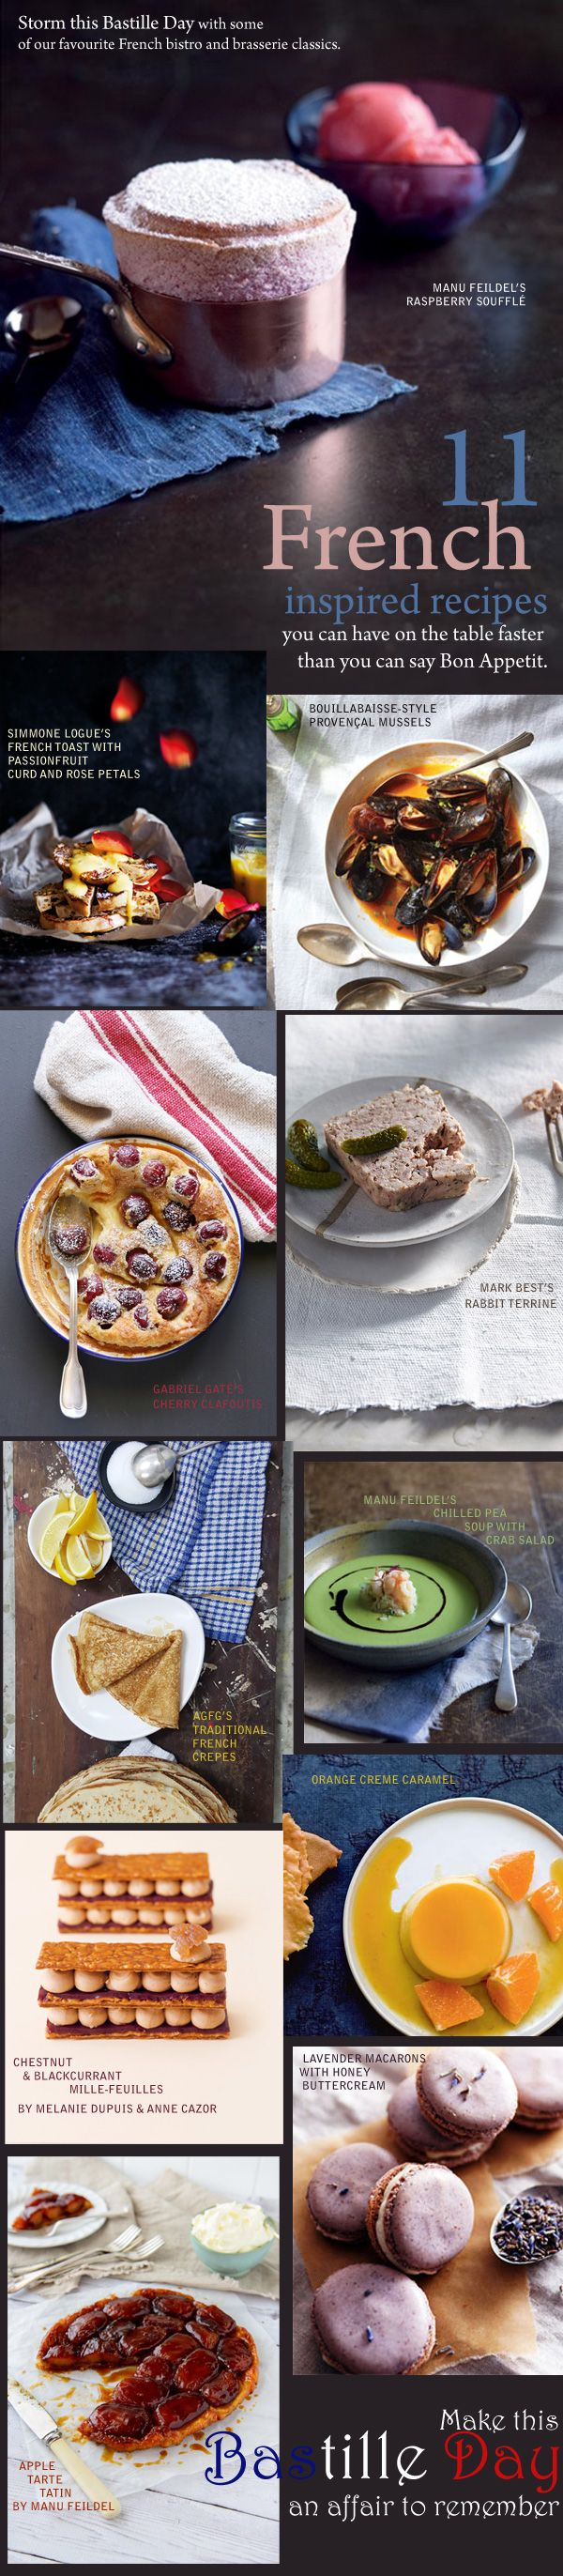 11 French Inspired Recipes from the Best